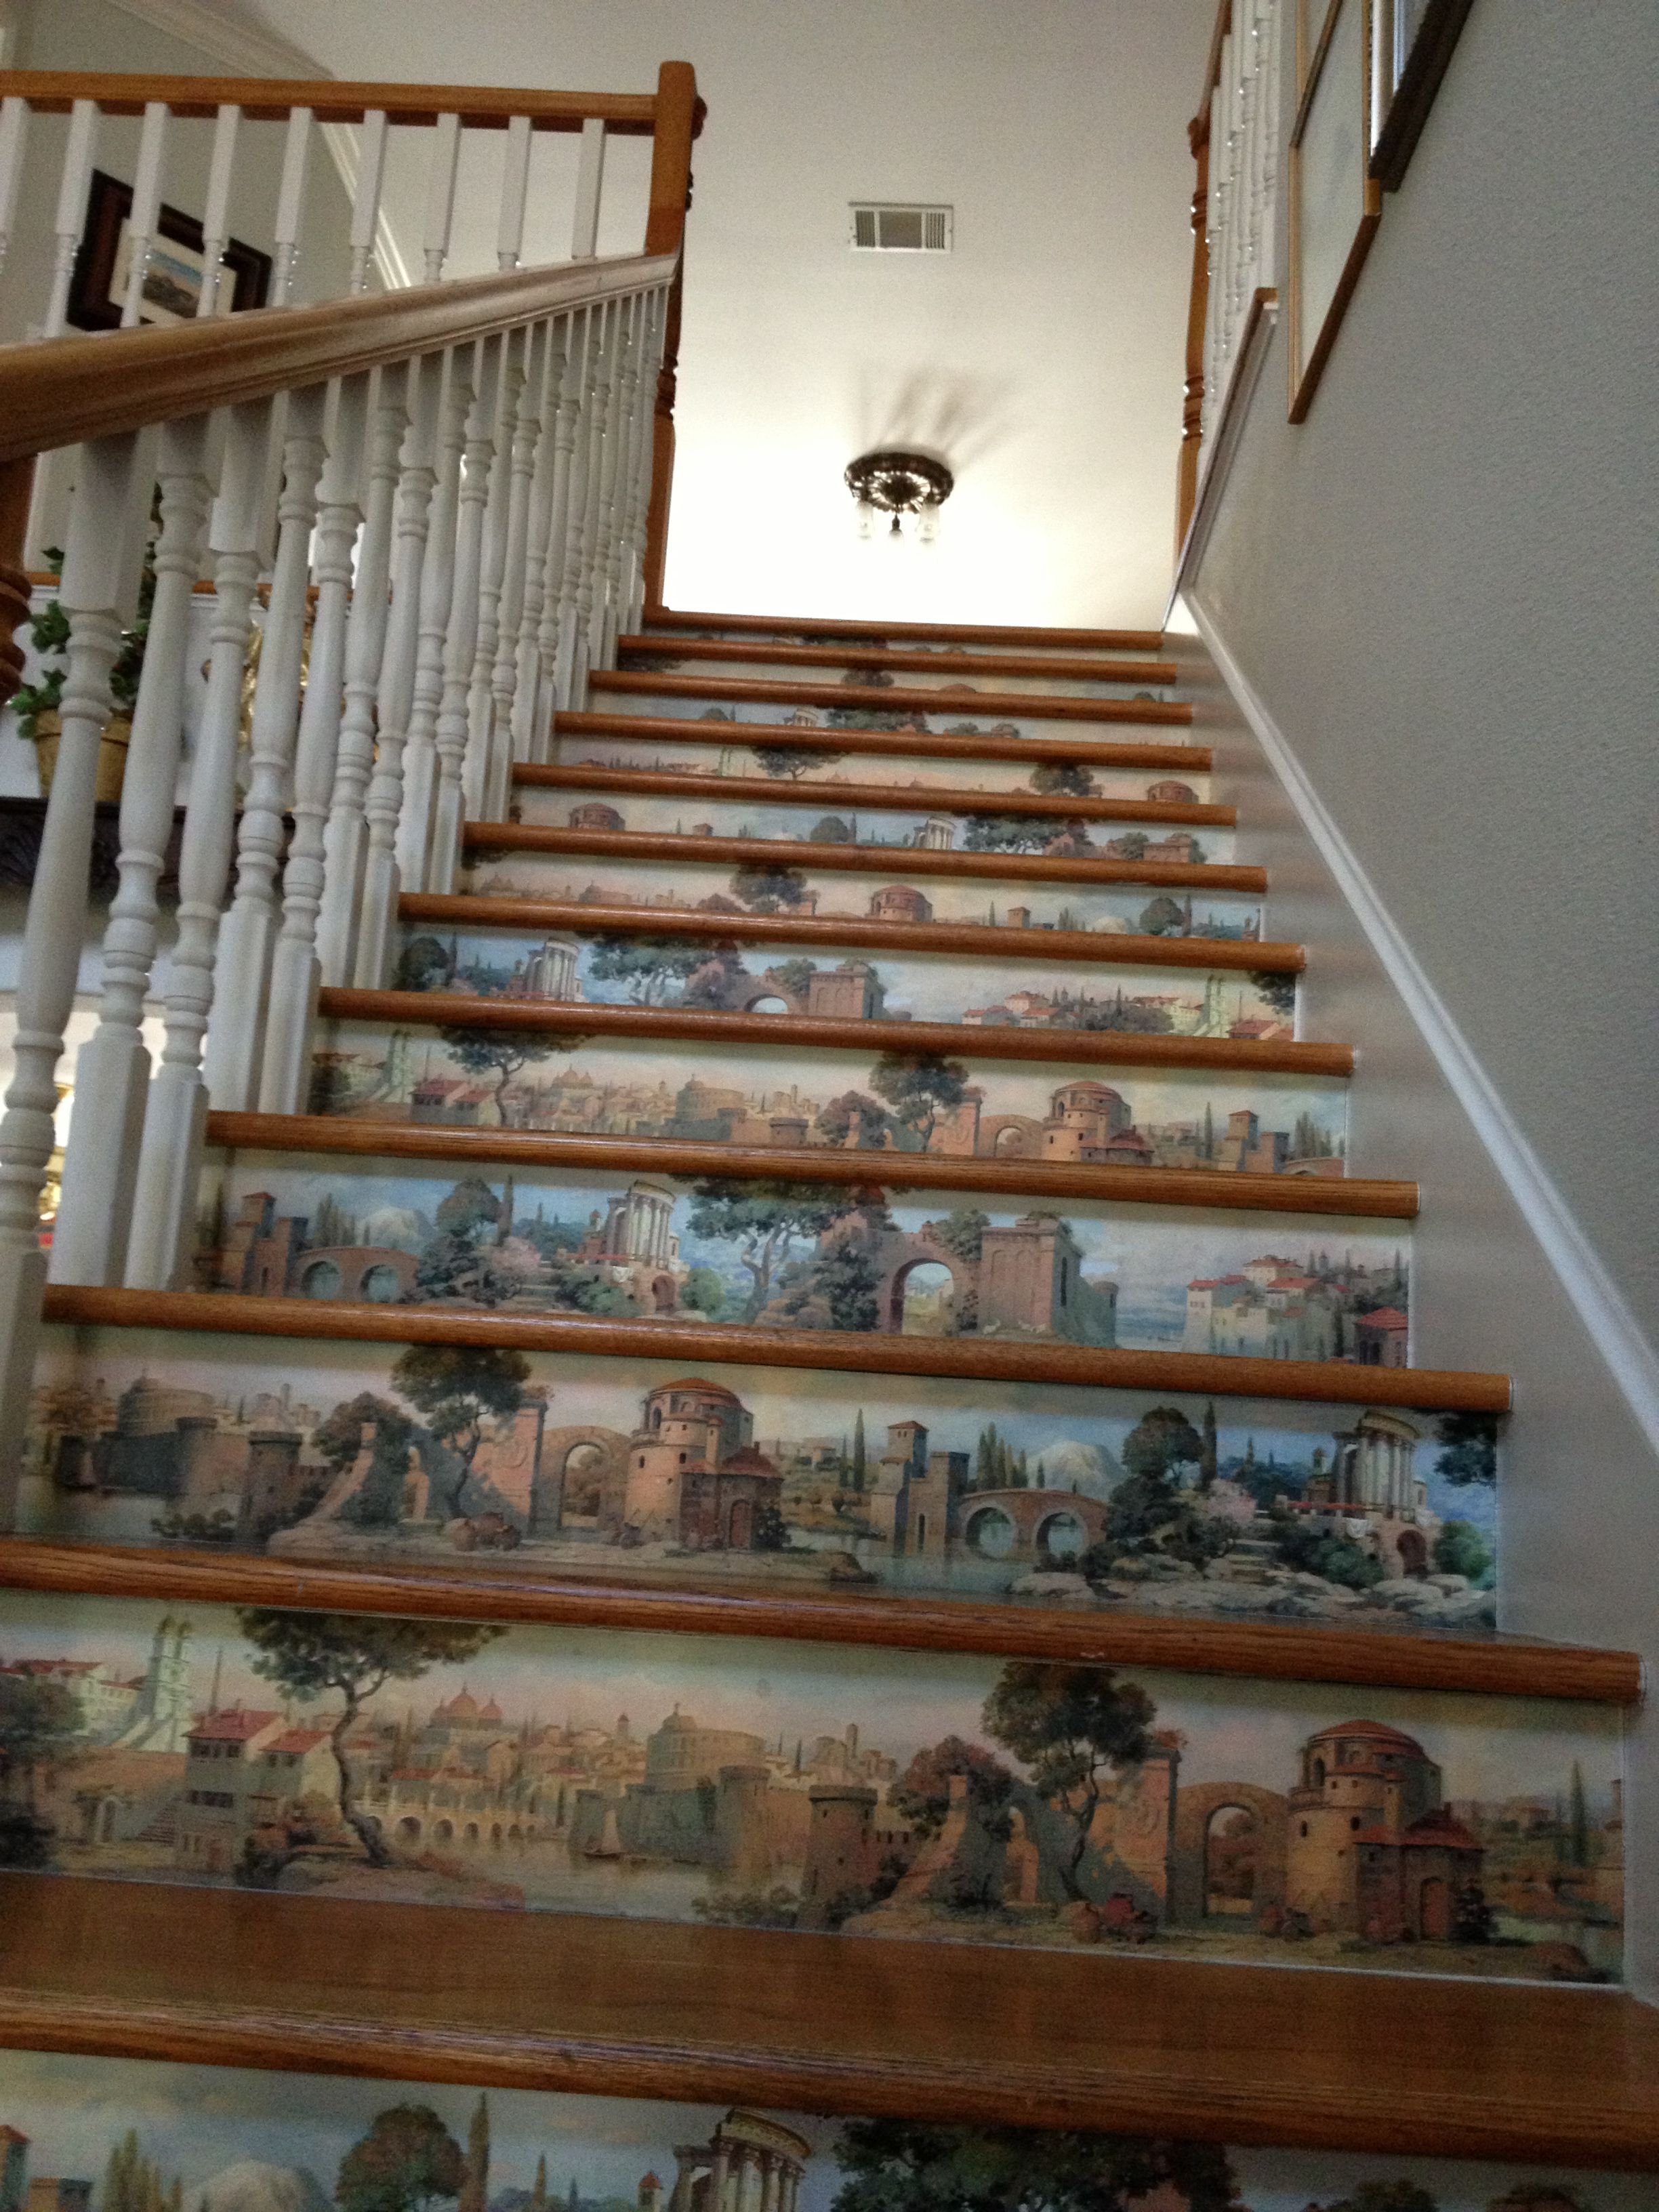 Used Wall Paper Border On Stairs Has Been Up 7 Years Getting Ready To Take It Off For A Change Painted Stairs Stairs Stair Risers